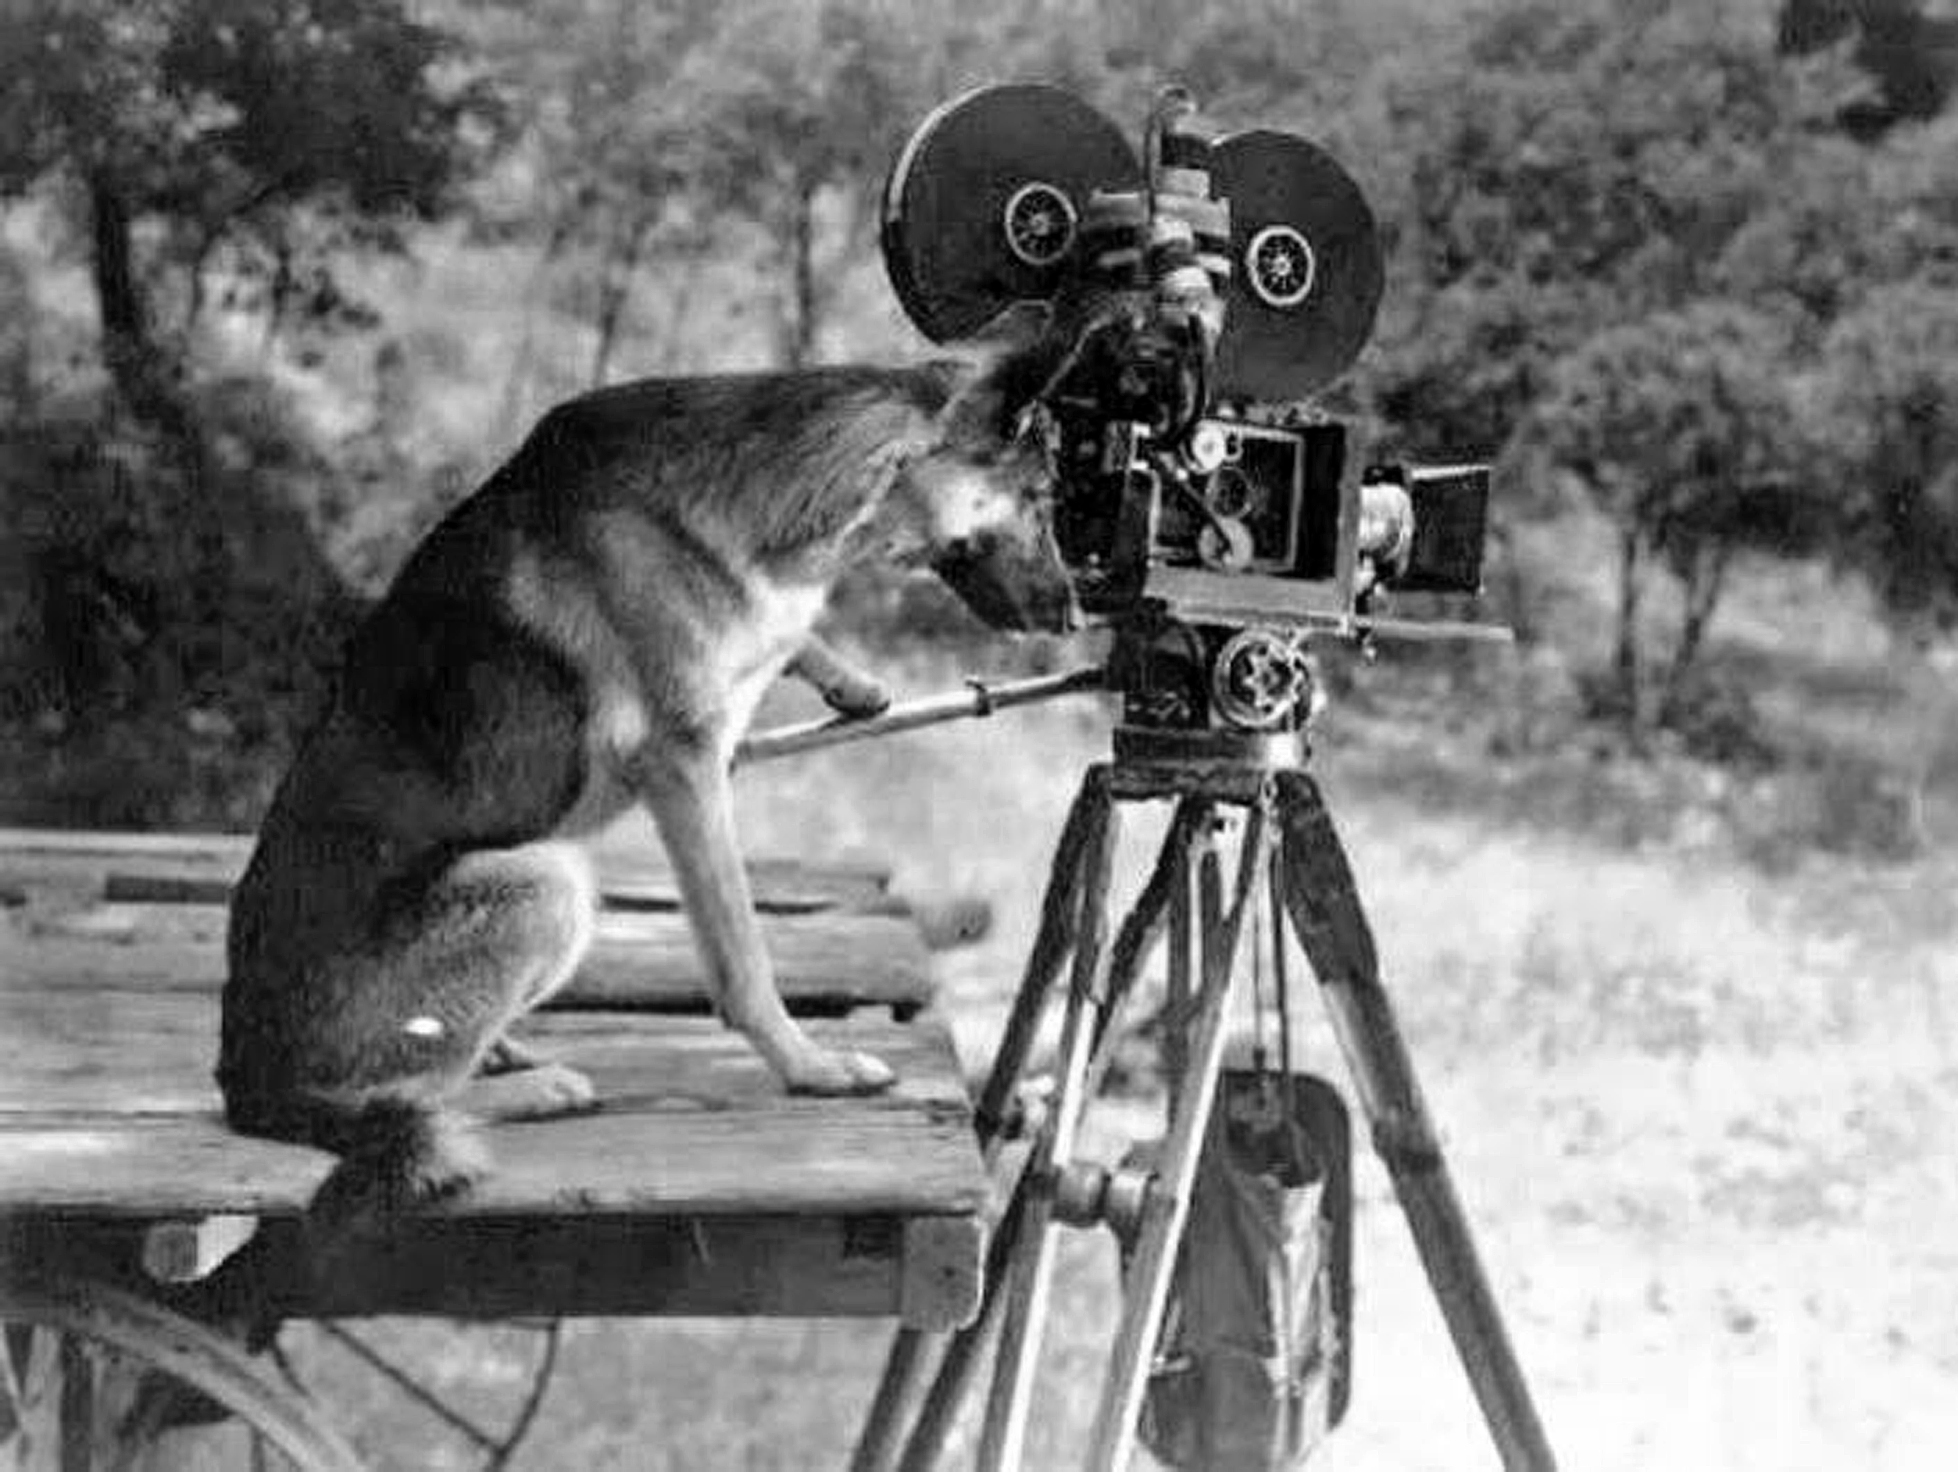 Rin Tin Tin at the camera